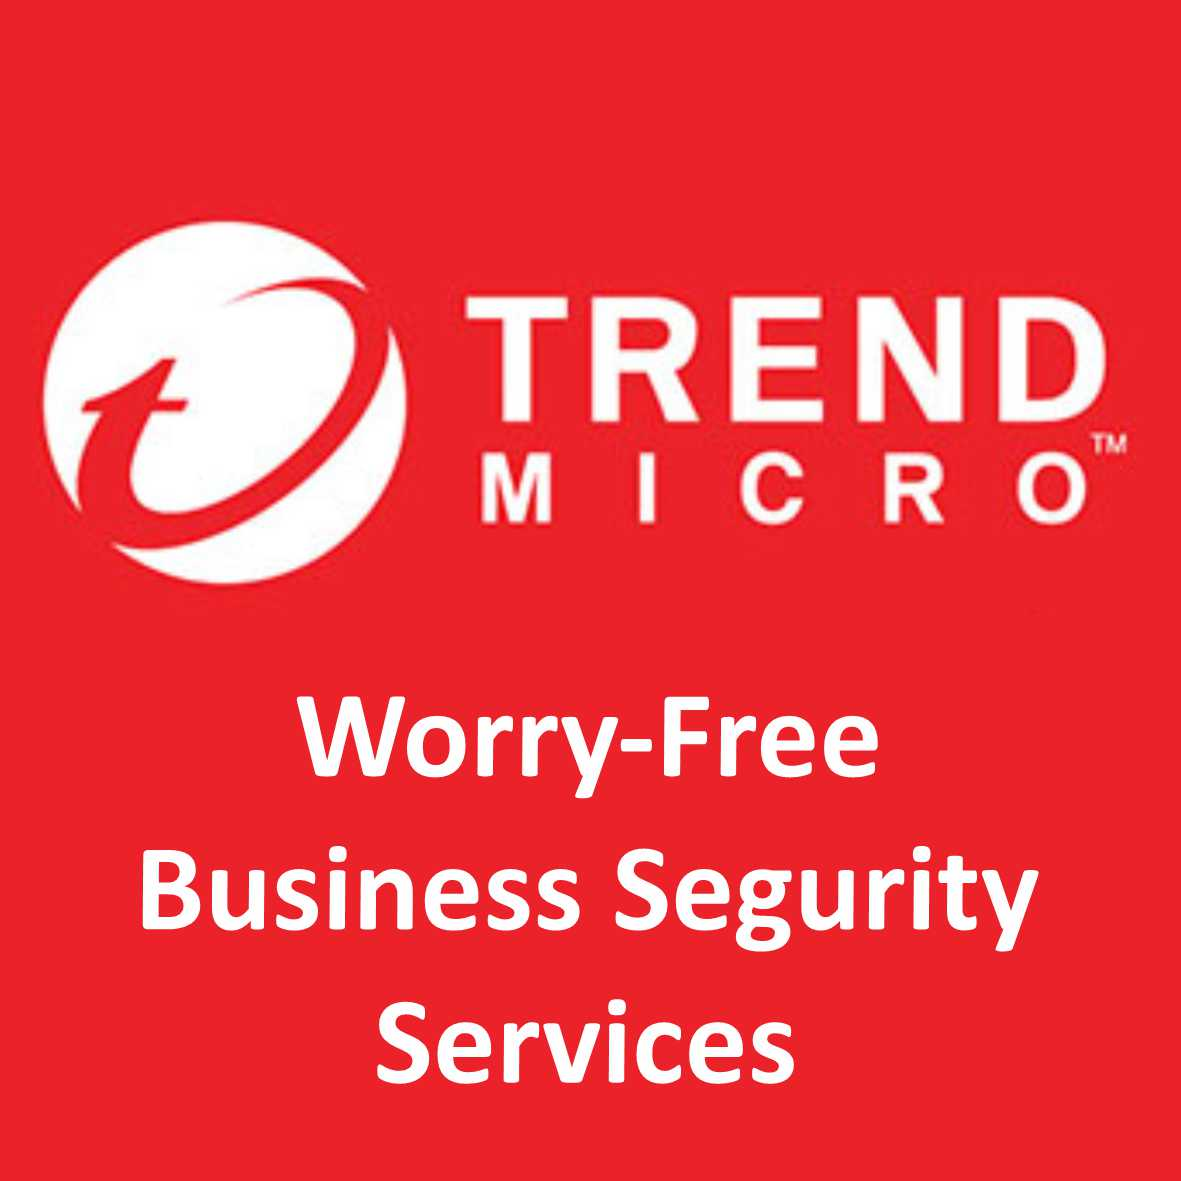 Worry-Free Business Segurity Services